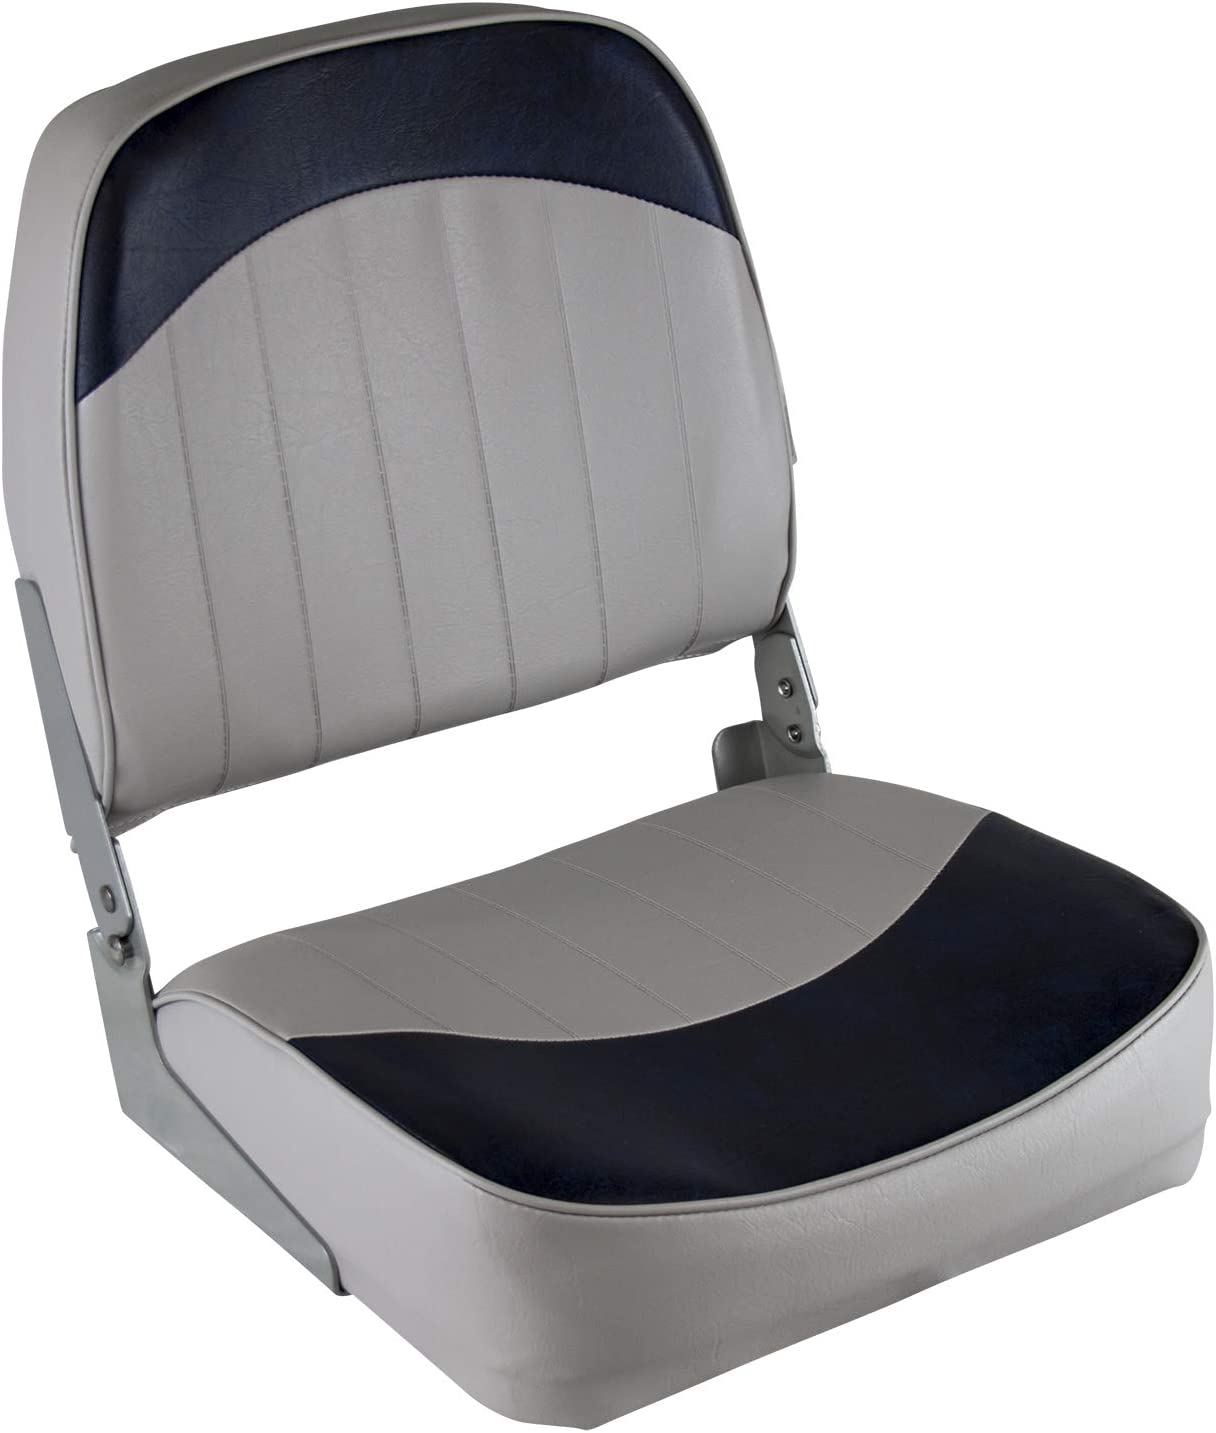 Wise 8WD734PLS-660 Low Back New favorite color Seat Grey Boat Blue